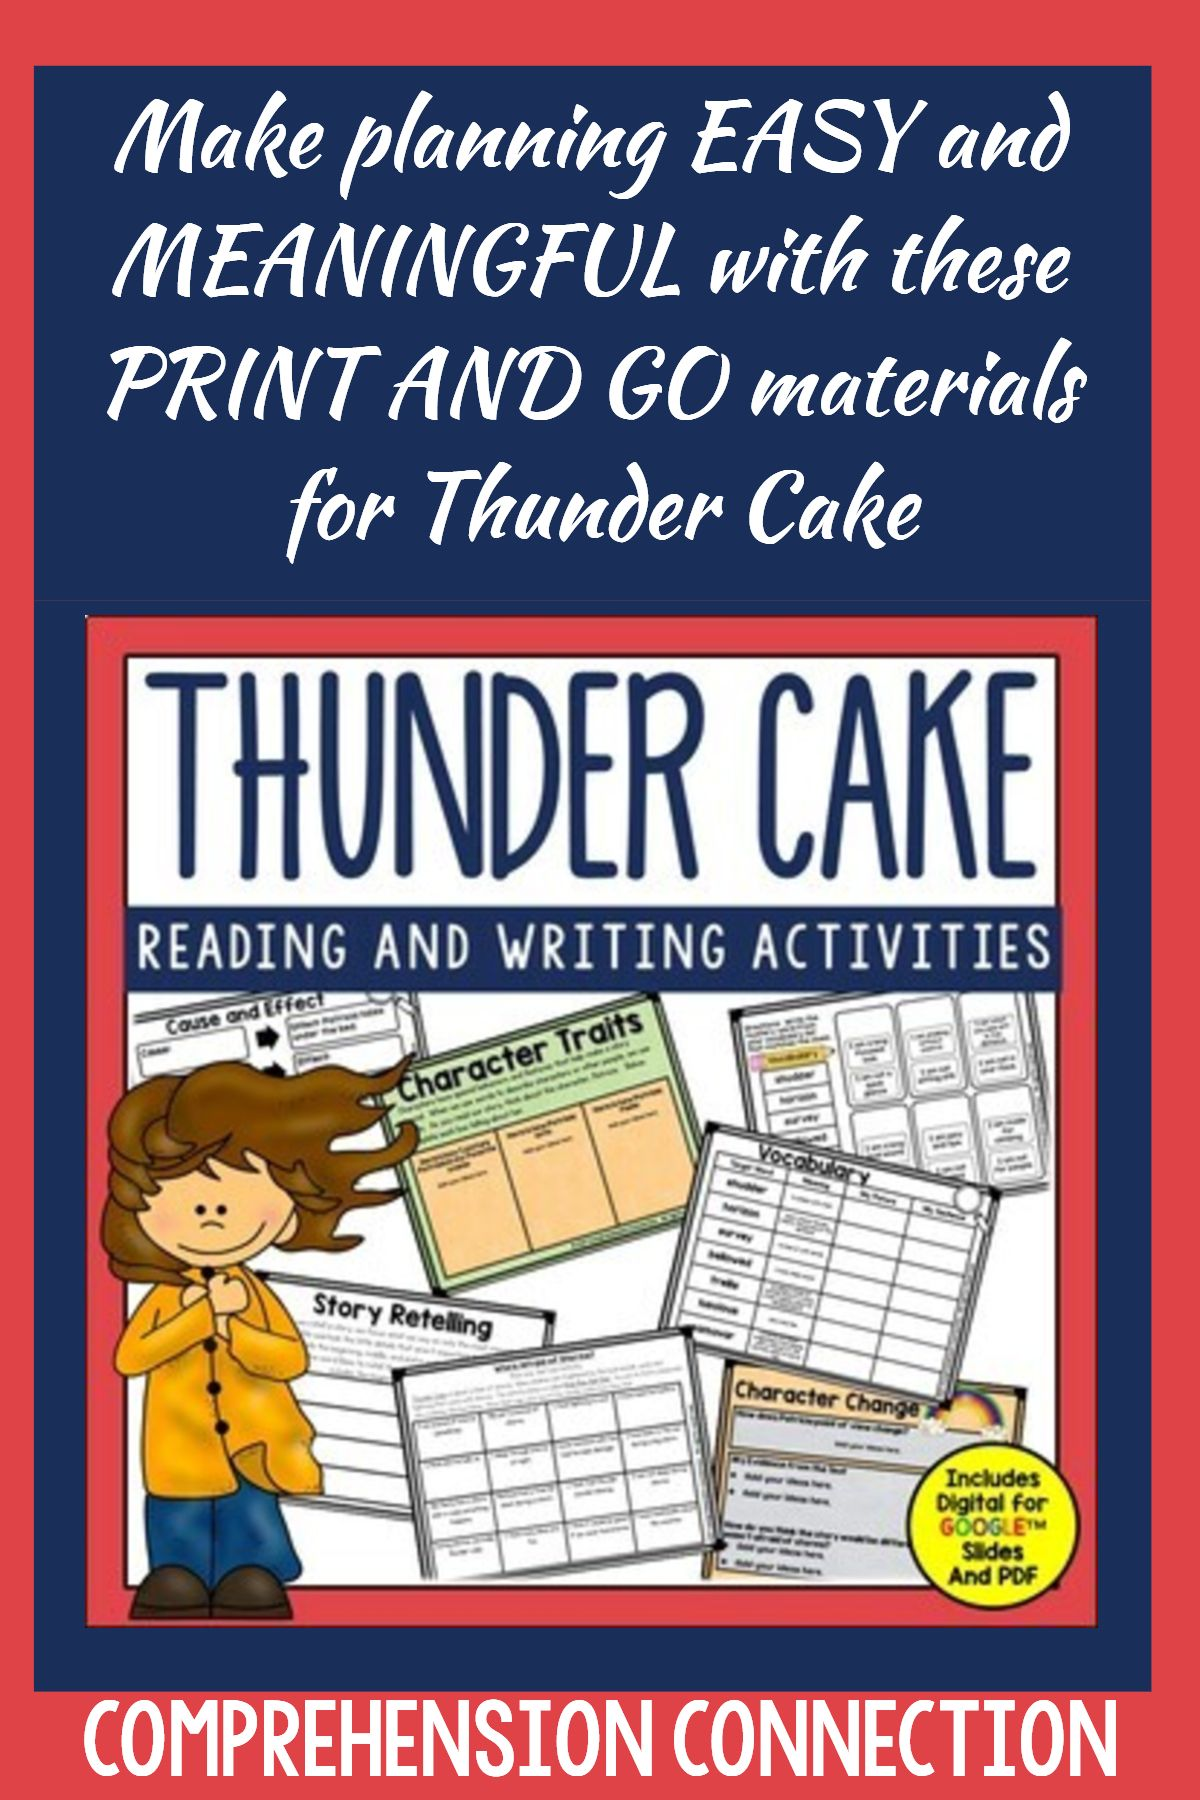 Need Meaningful Materials To Use With This Great Book Save Time And Keep Your Kids Focused With This Comp Patricia Polacco Books Mentor Texts Patricia Polacco